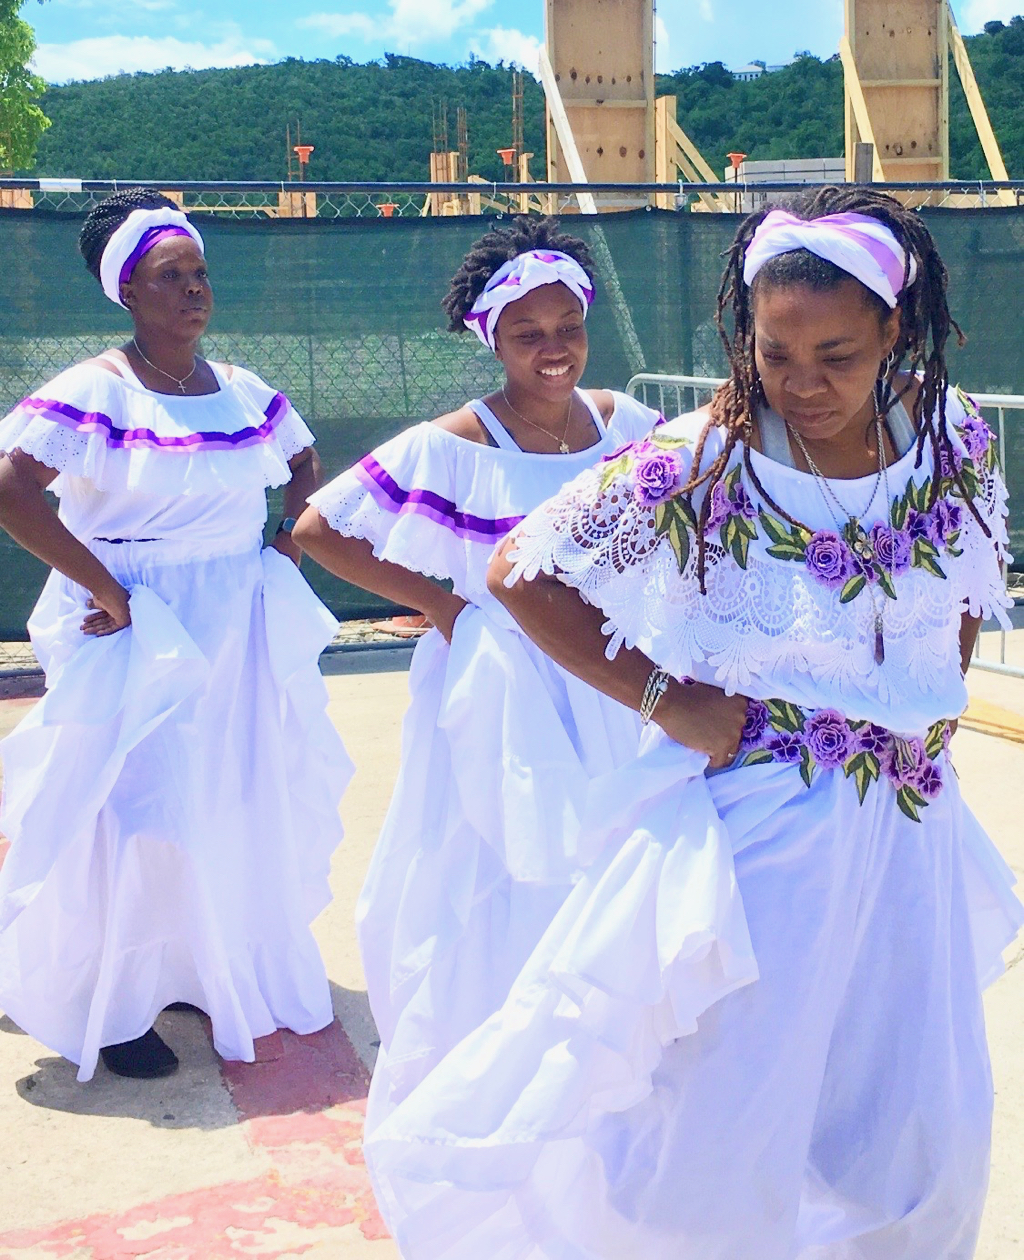 Macislyn Bamboula dancers take the stage. (Source photo by Amy Roberts)